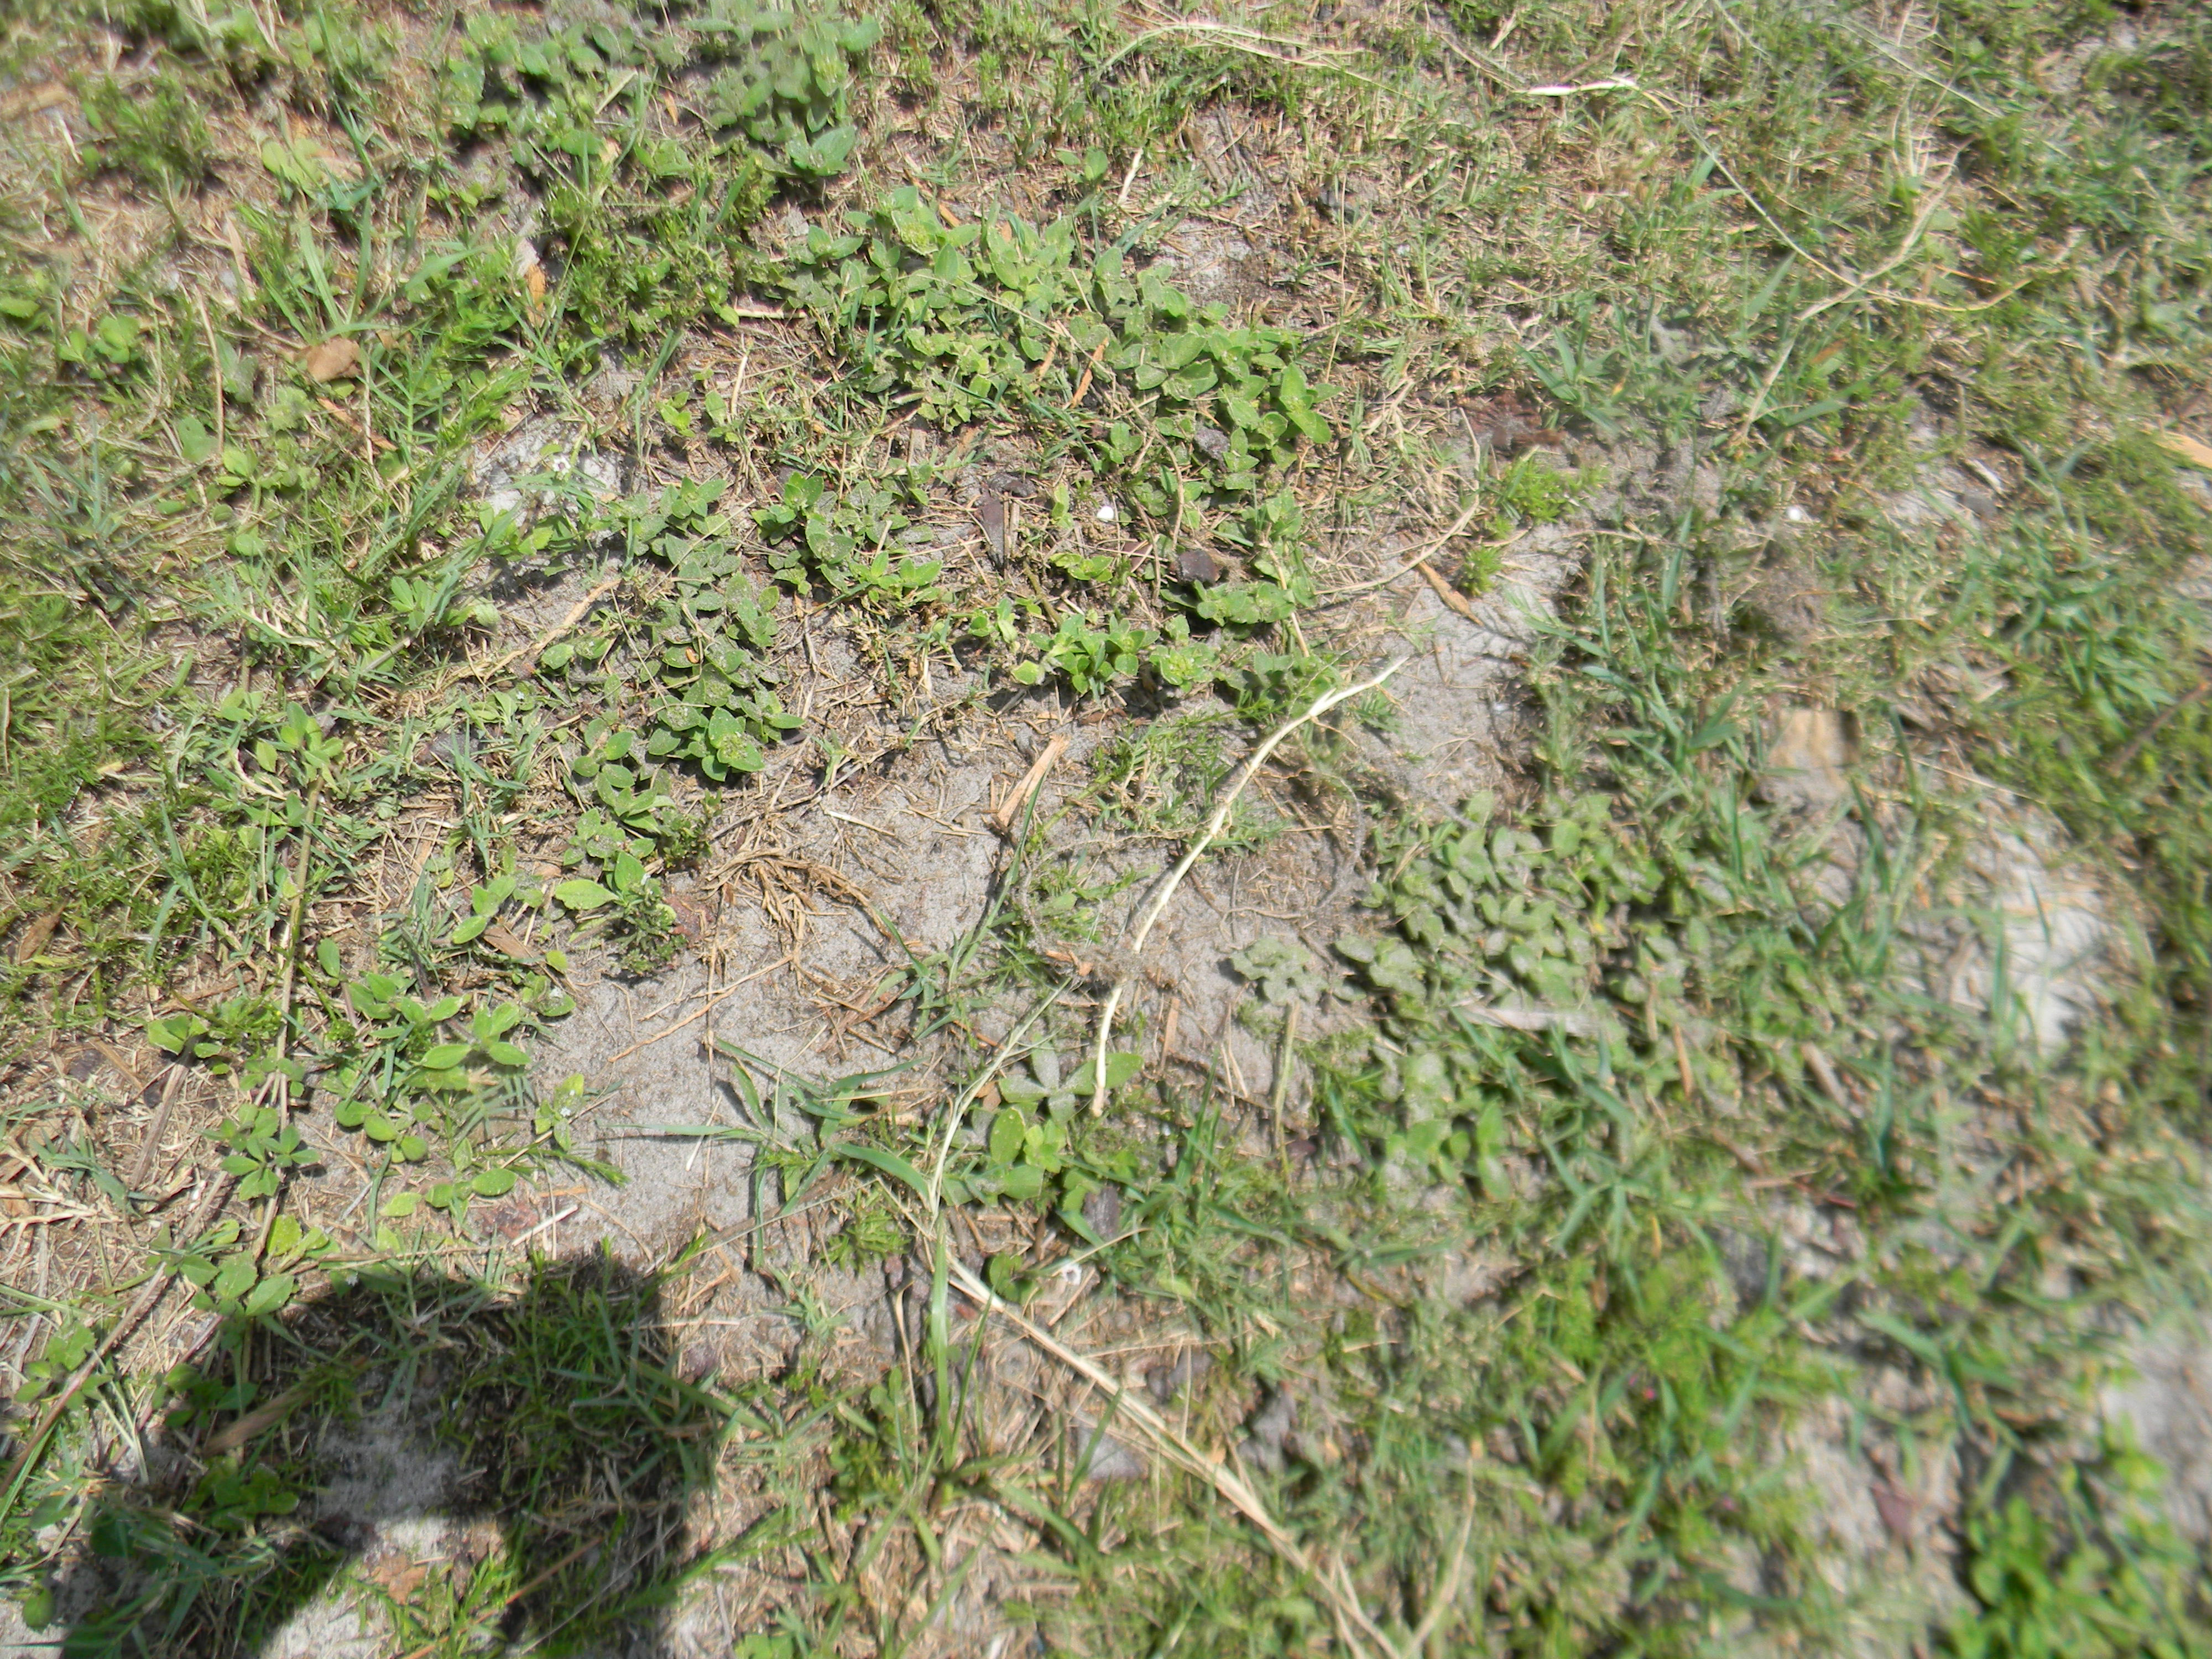 Landscaping With Bermuda Grass : Lawn weeds oklahoma submited images